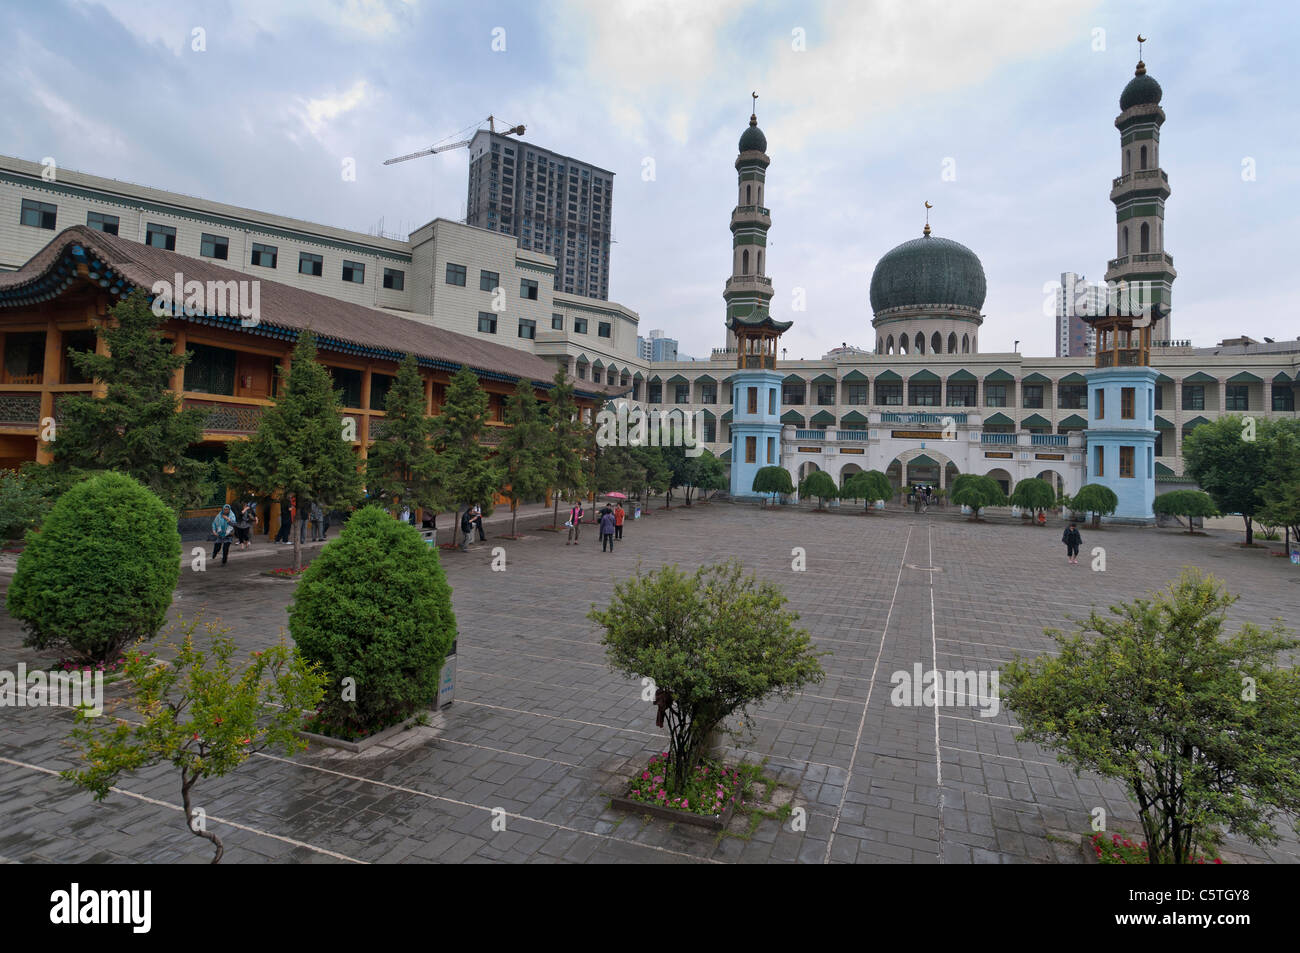 The Great Mosque after Friday prayers, Xining, Qinghai Province, China - Stock Image